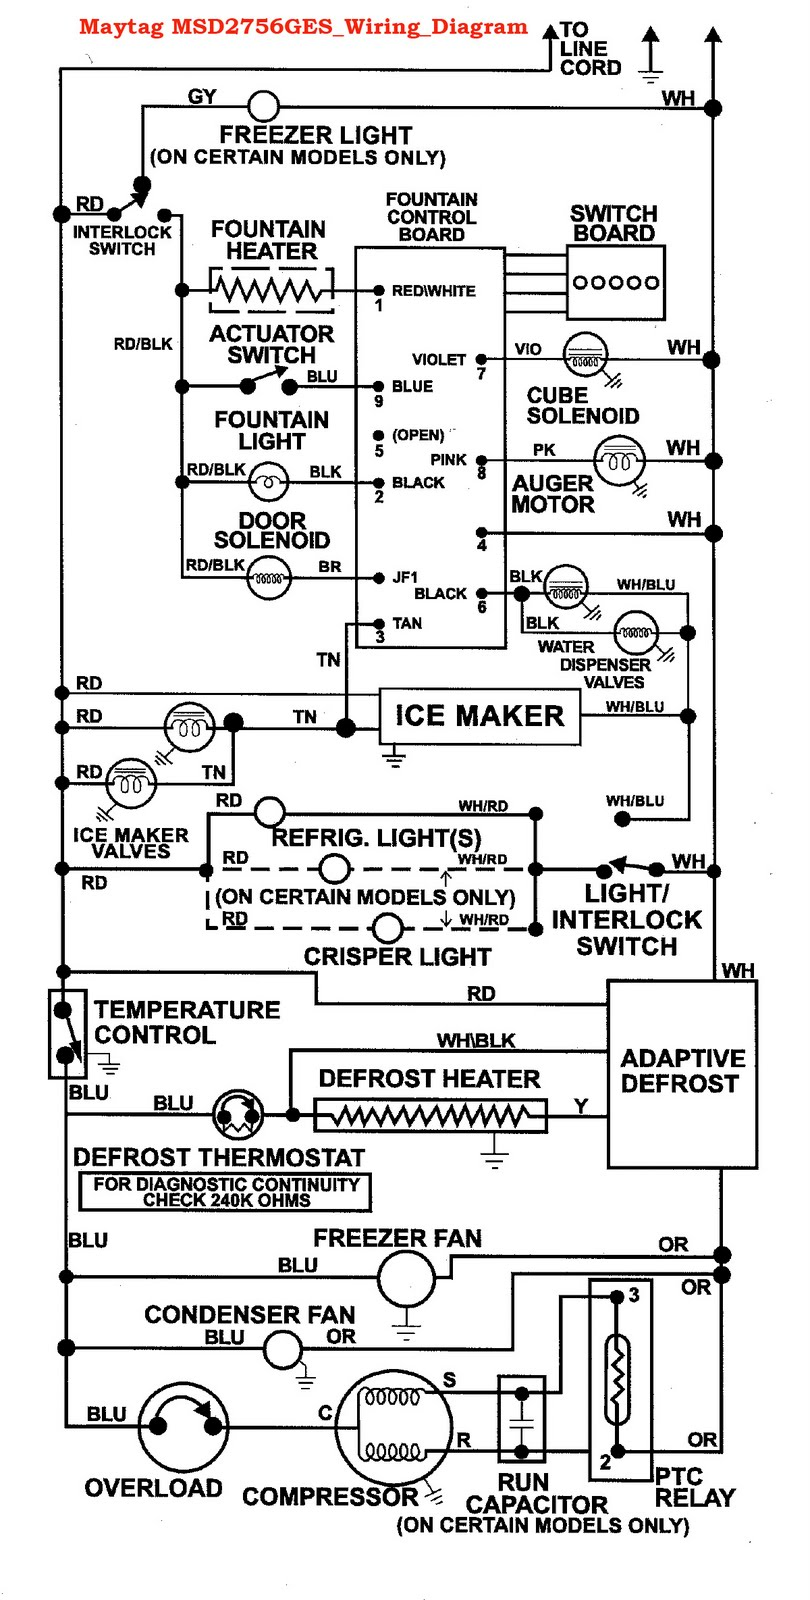 maytag dishwasher wiring diagram automotive cooling fan relay for best library refrigerator parts circuit board washer